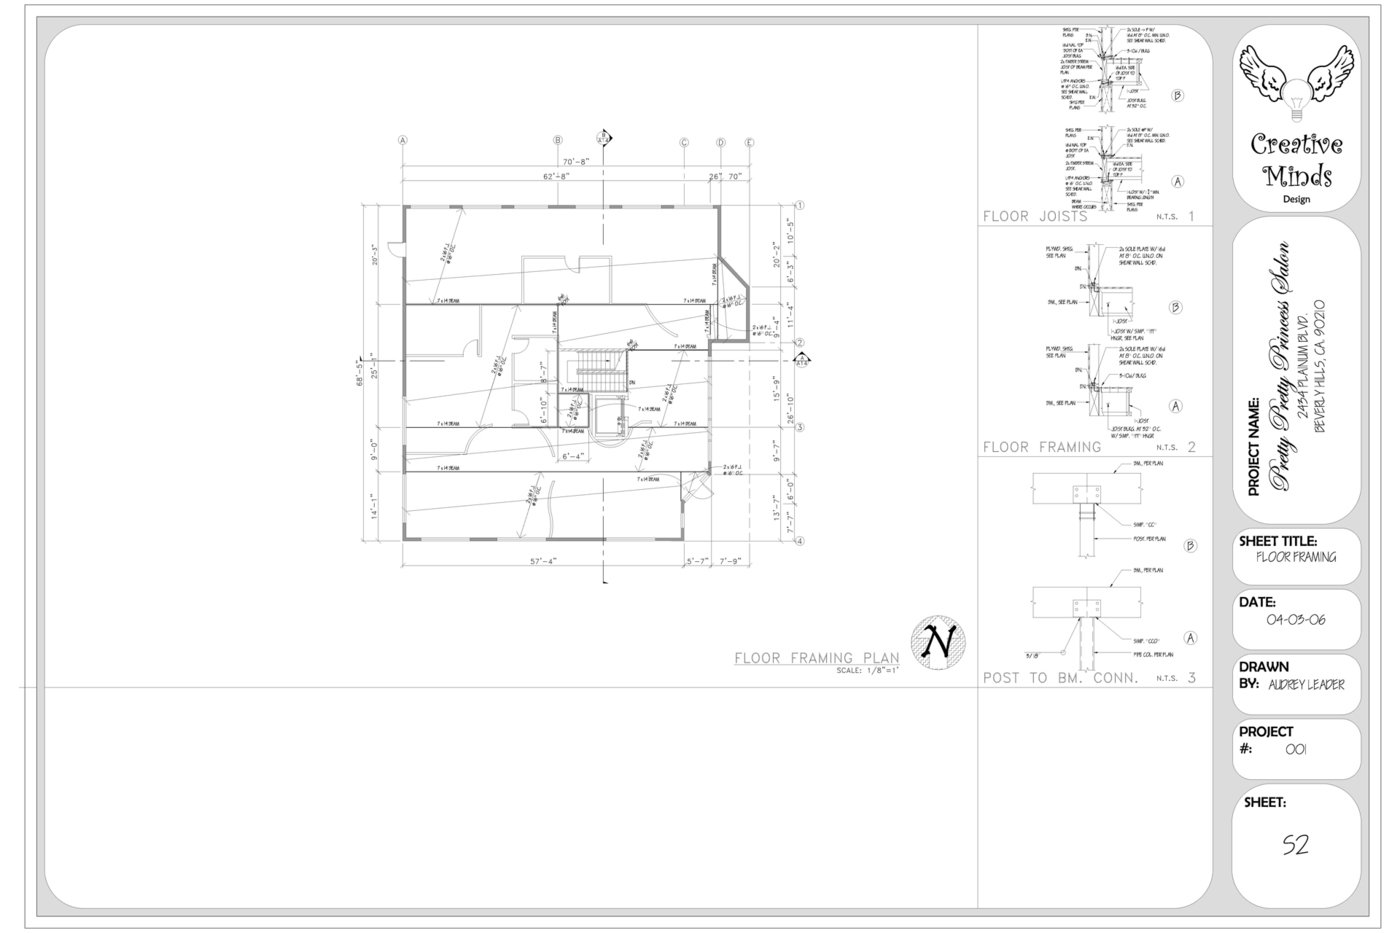 Commercial CAD by AUDREY LEADER at Coroflot.com